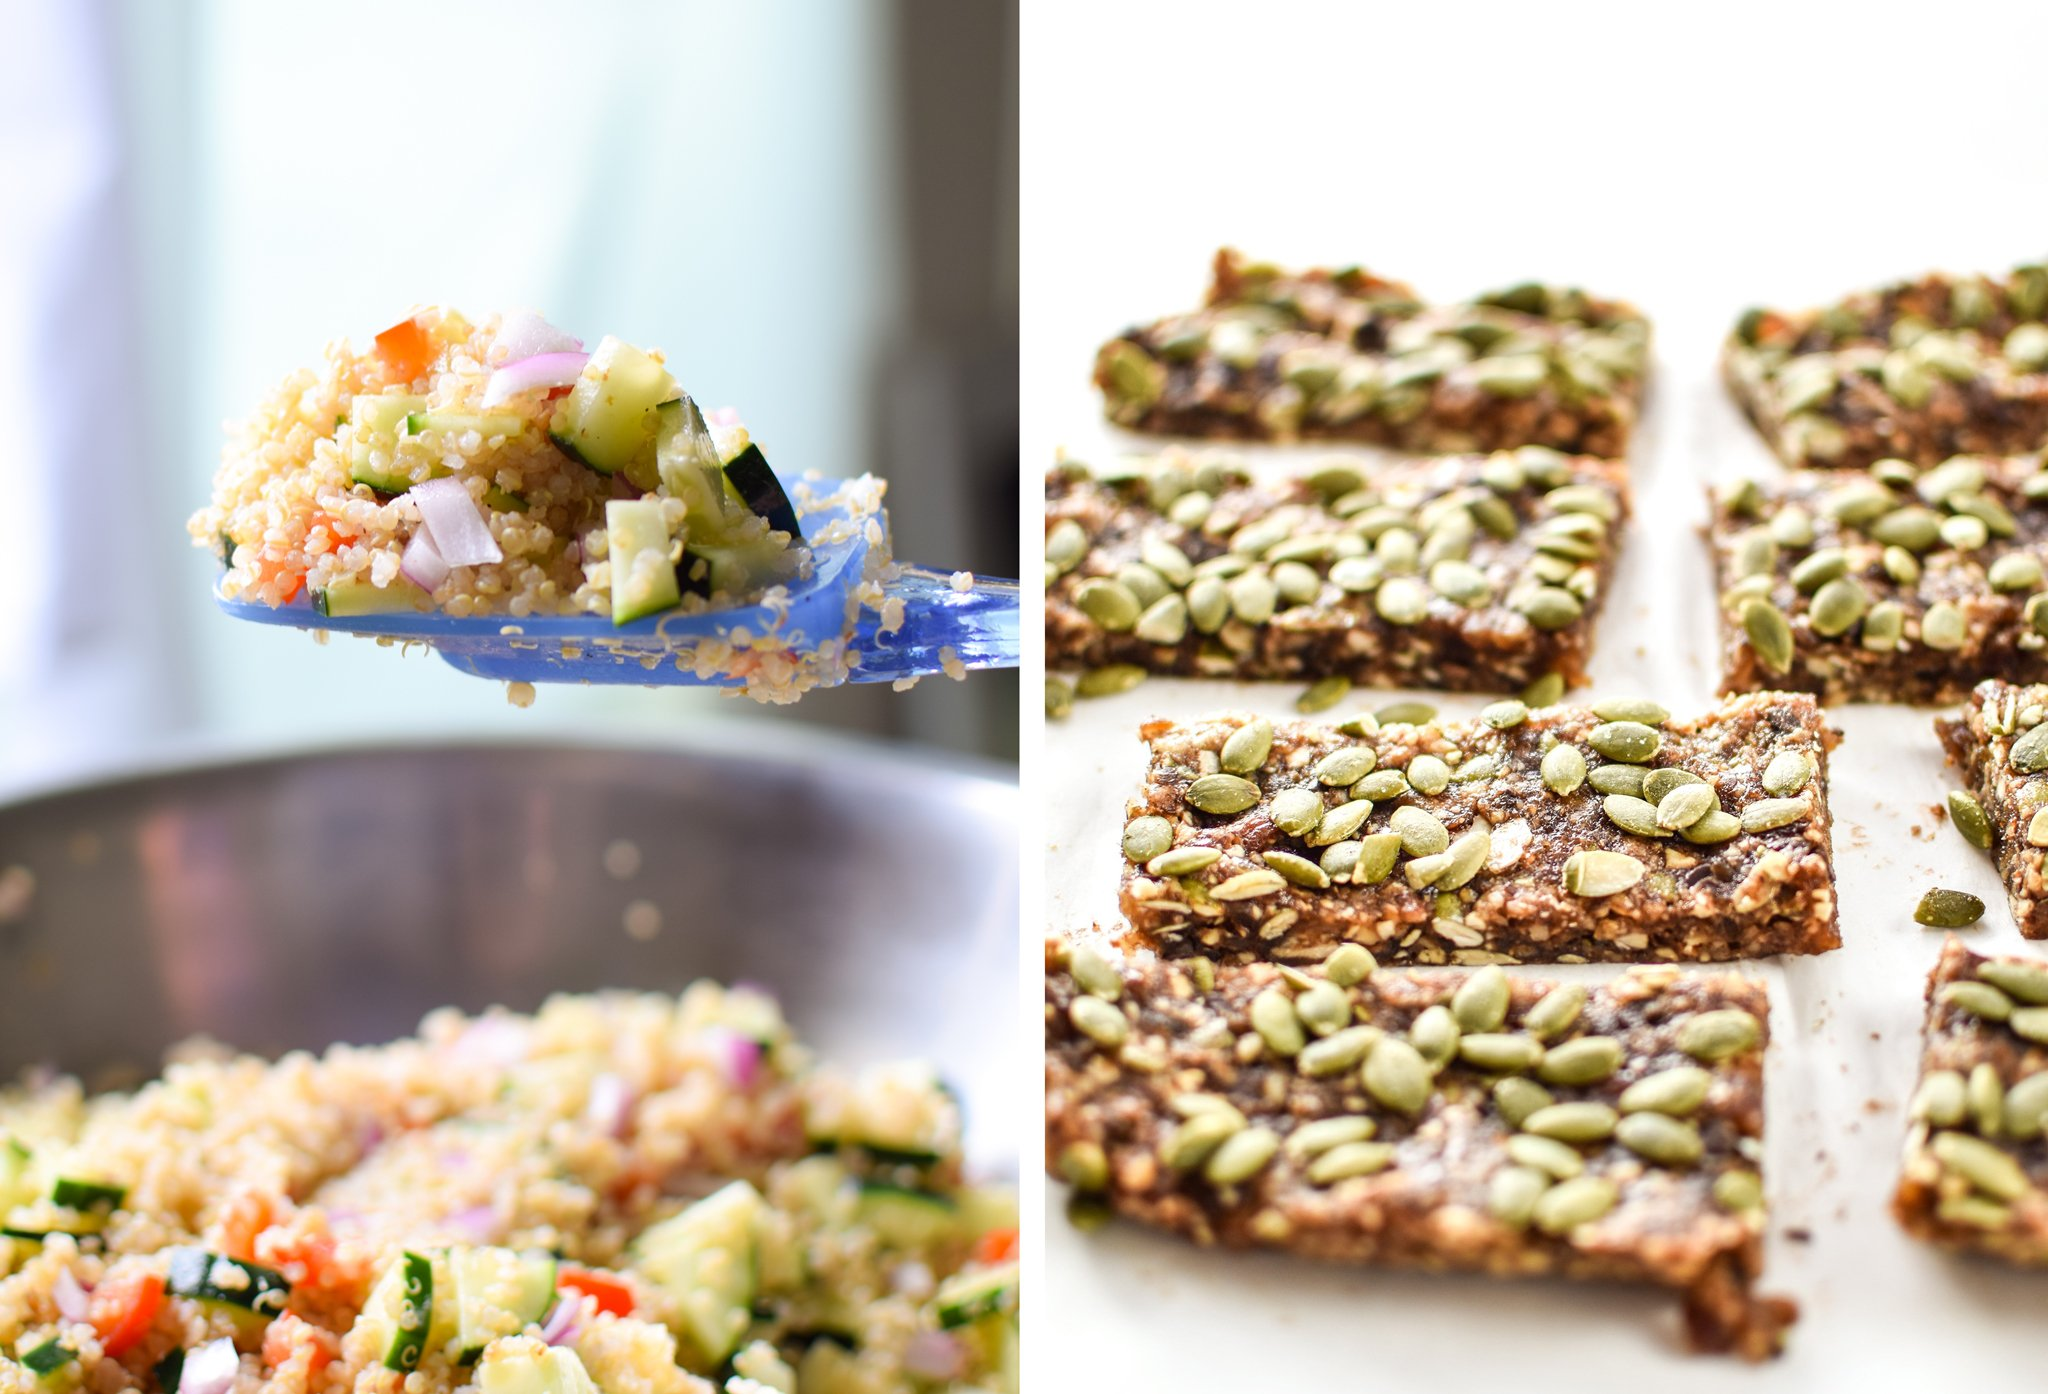 Quinoa salad with a hazy blue and grey background on the left; No-Bake Date bars on the right with a clean white background.